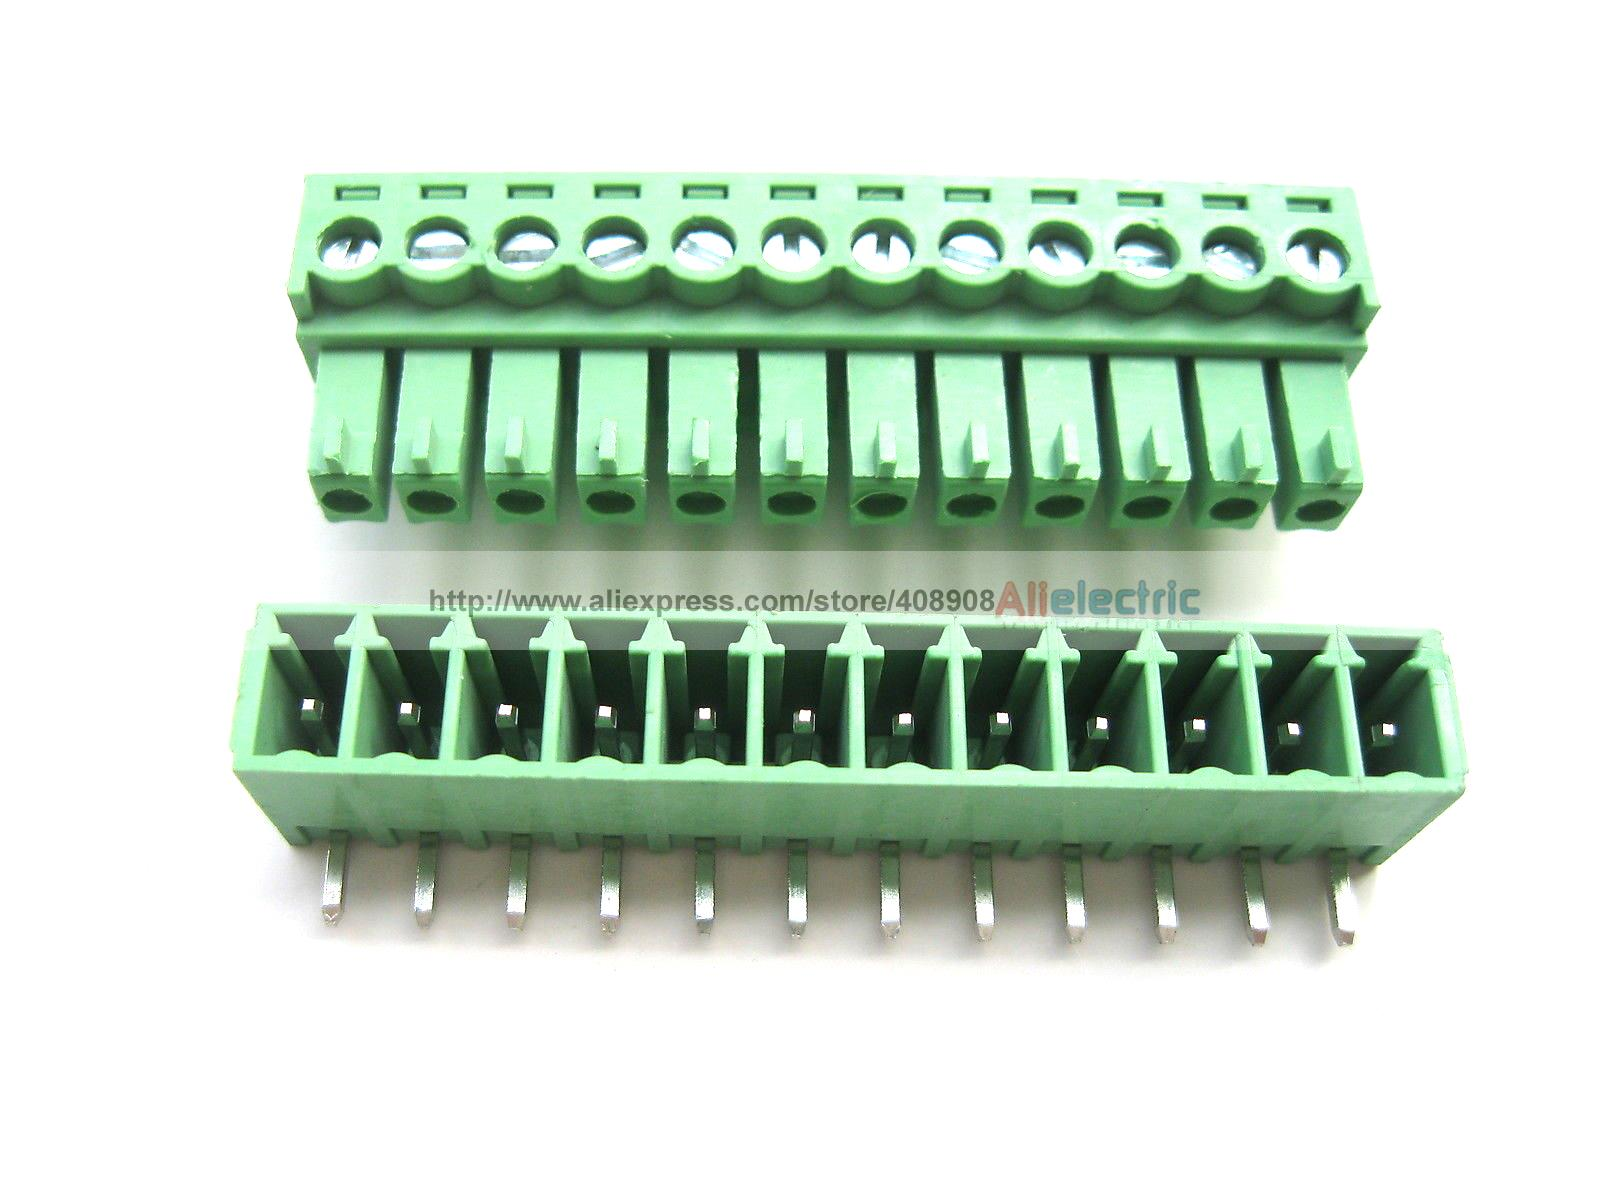 30 Pcs Screw Terminal Block Connector 3.5mm Angle 12 Pin Green Pluggable Type 30 pcs screw terminal block connector 3 81mm 12 pin green pluggable type